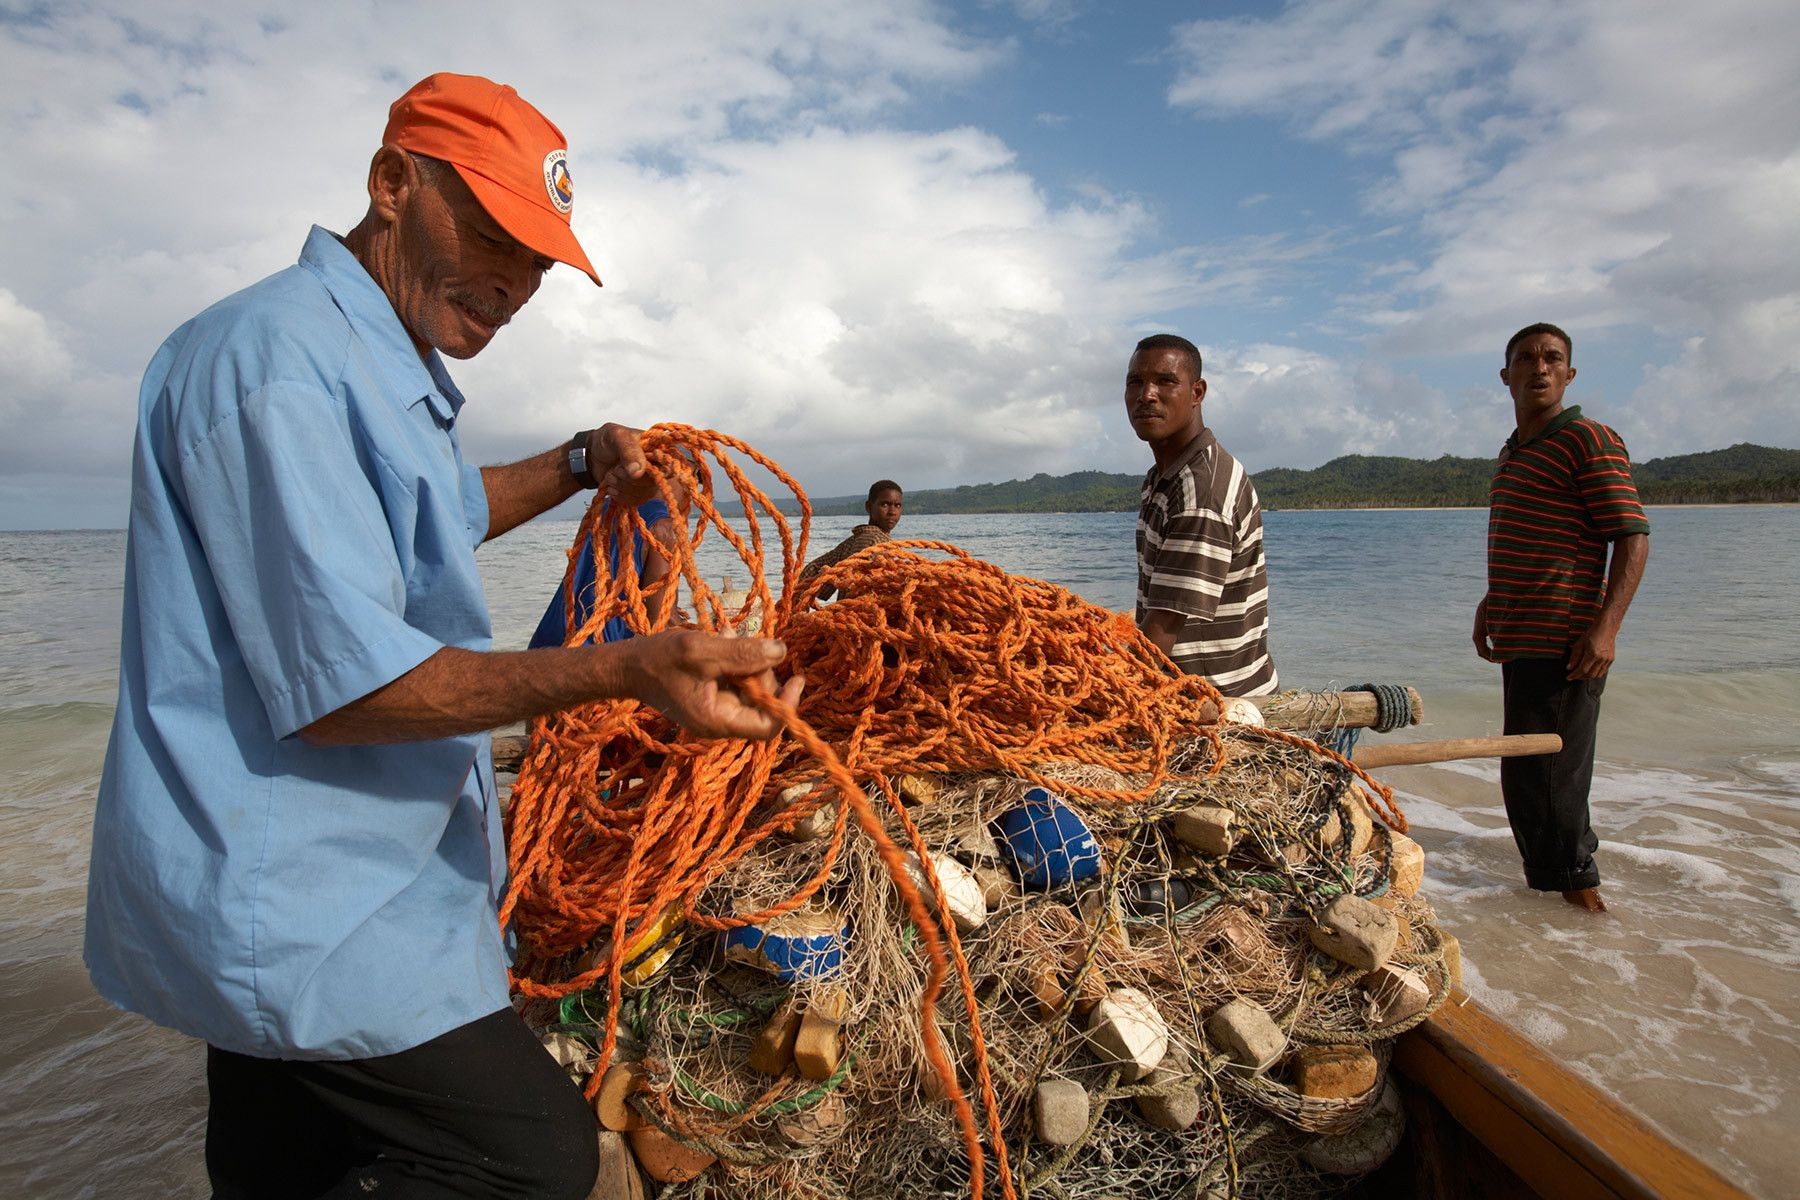 Fishermen on the Samana Peninsula, Dominican Republic